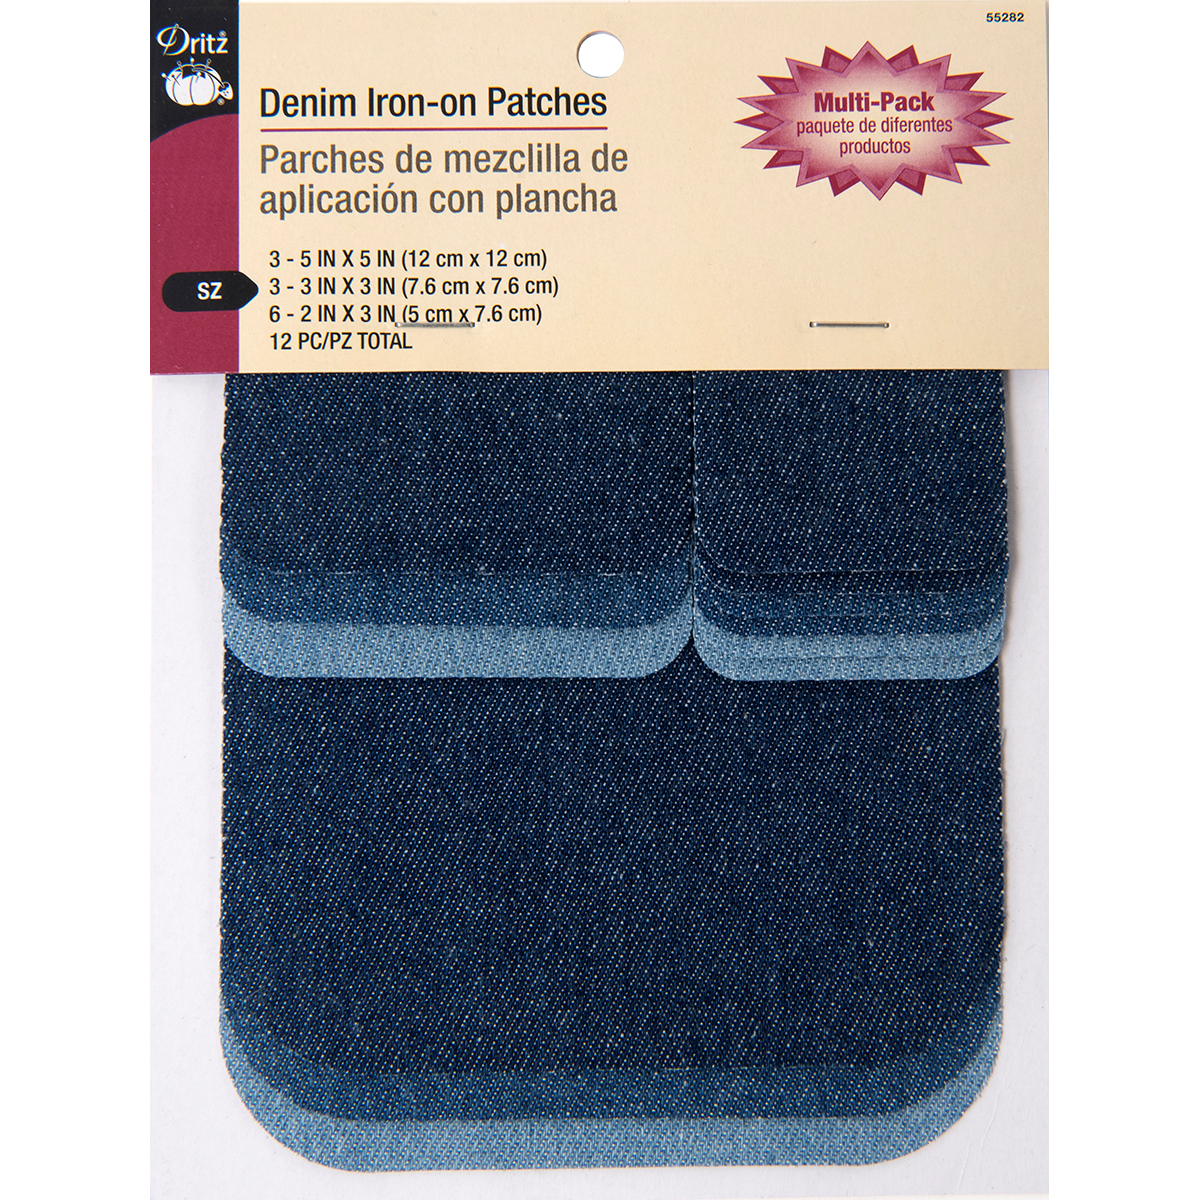 Dritz Iron-On Patches - Pack of 12, Assorted Denim